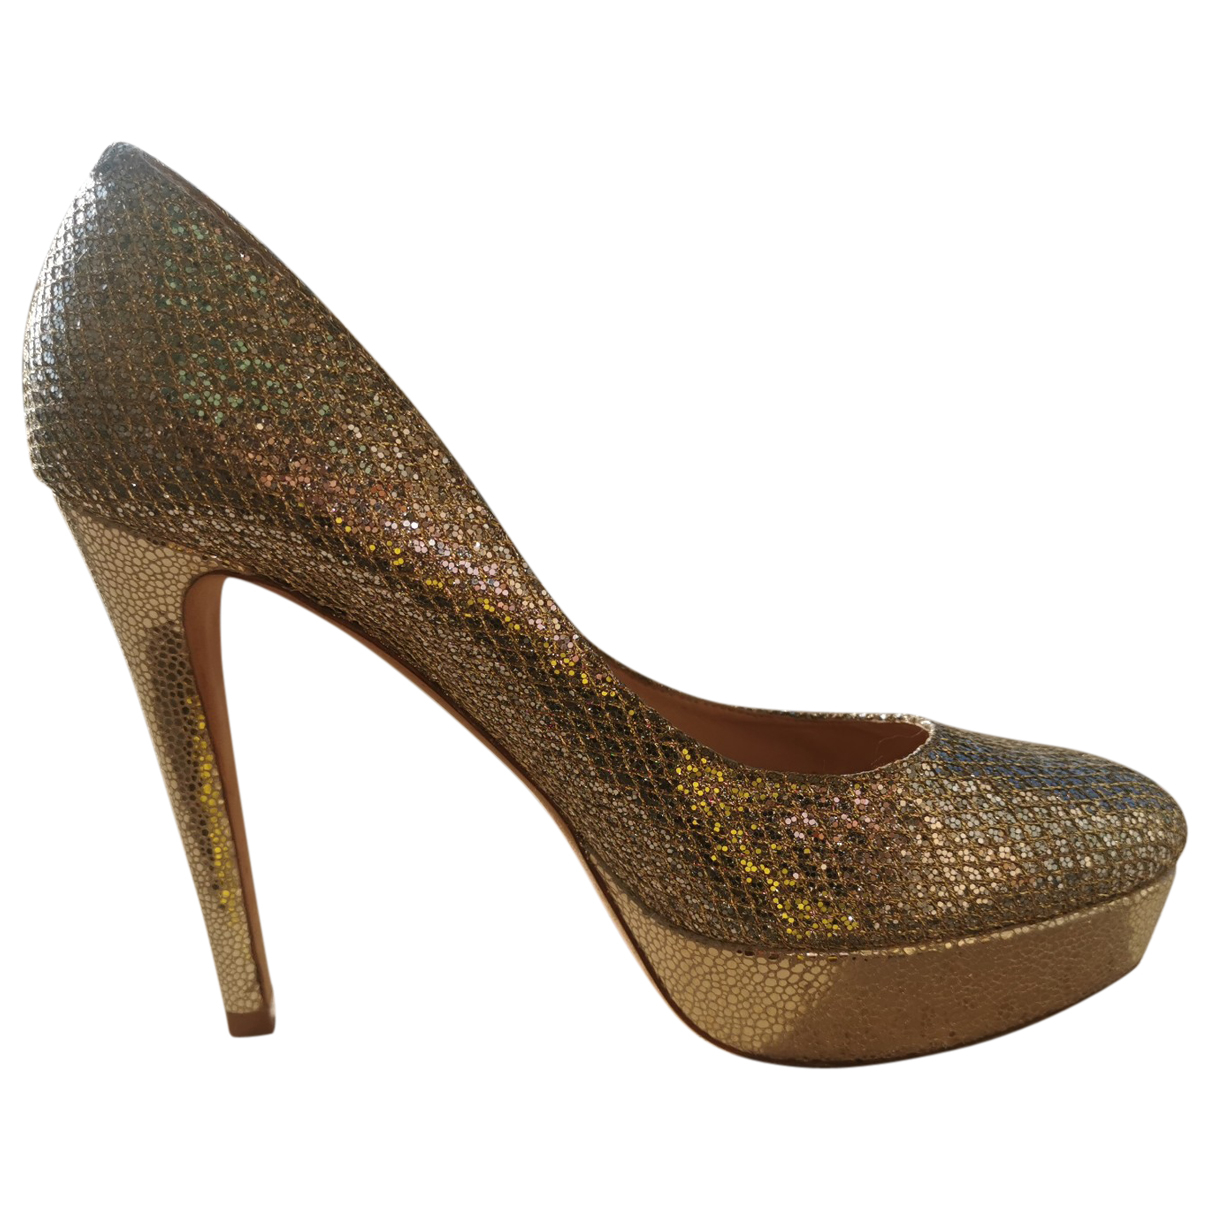 Jimmy Choo \N Pumps in  Silber Mit Pailletten